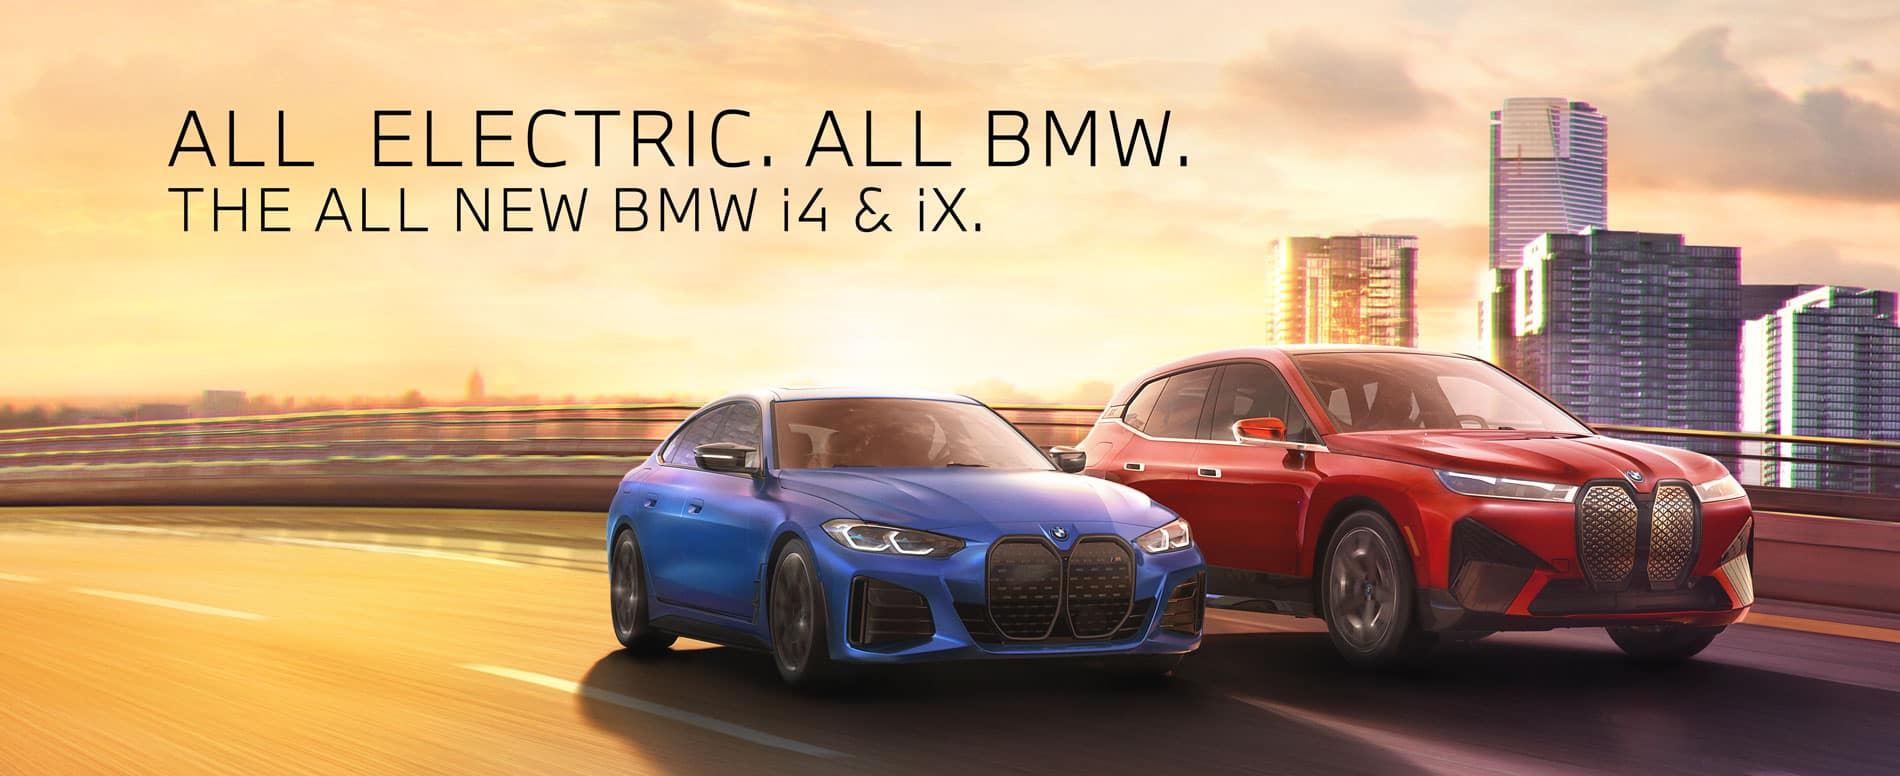 All electric. All BMW, The all new BMW i4 And iX